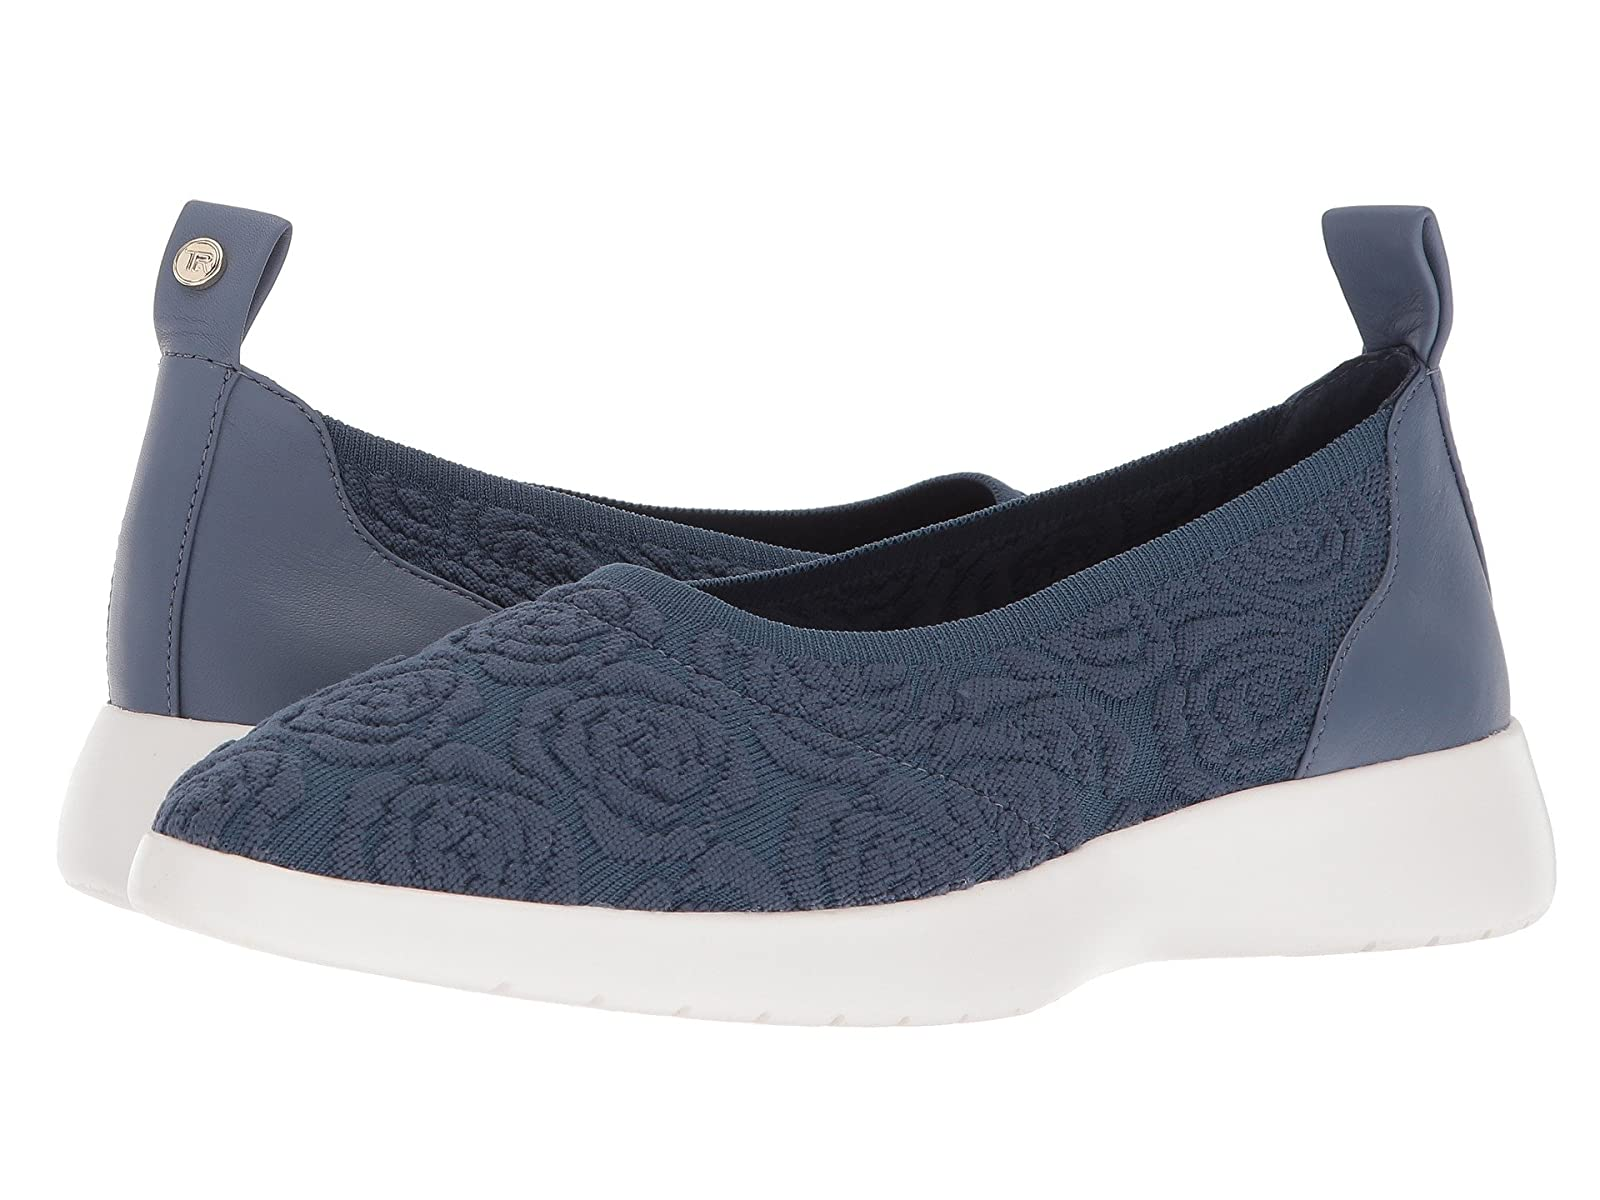 Taryn Rose DaisyAtmospheric grades have affordable shoes